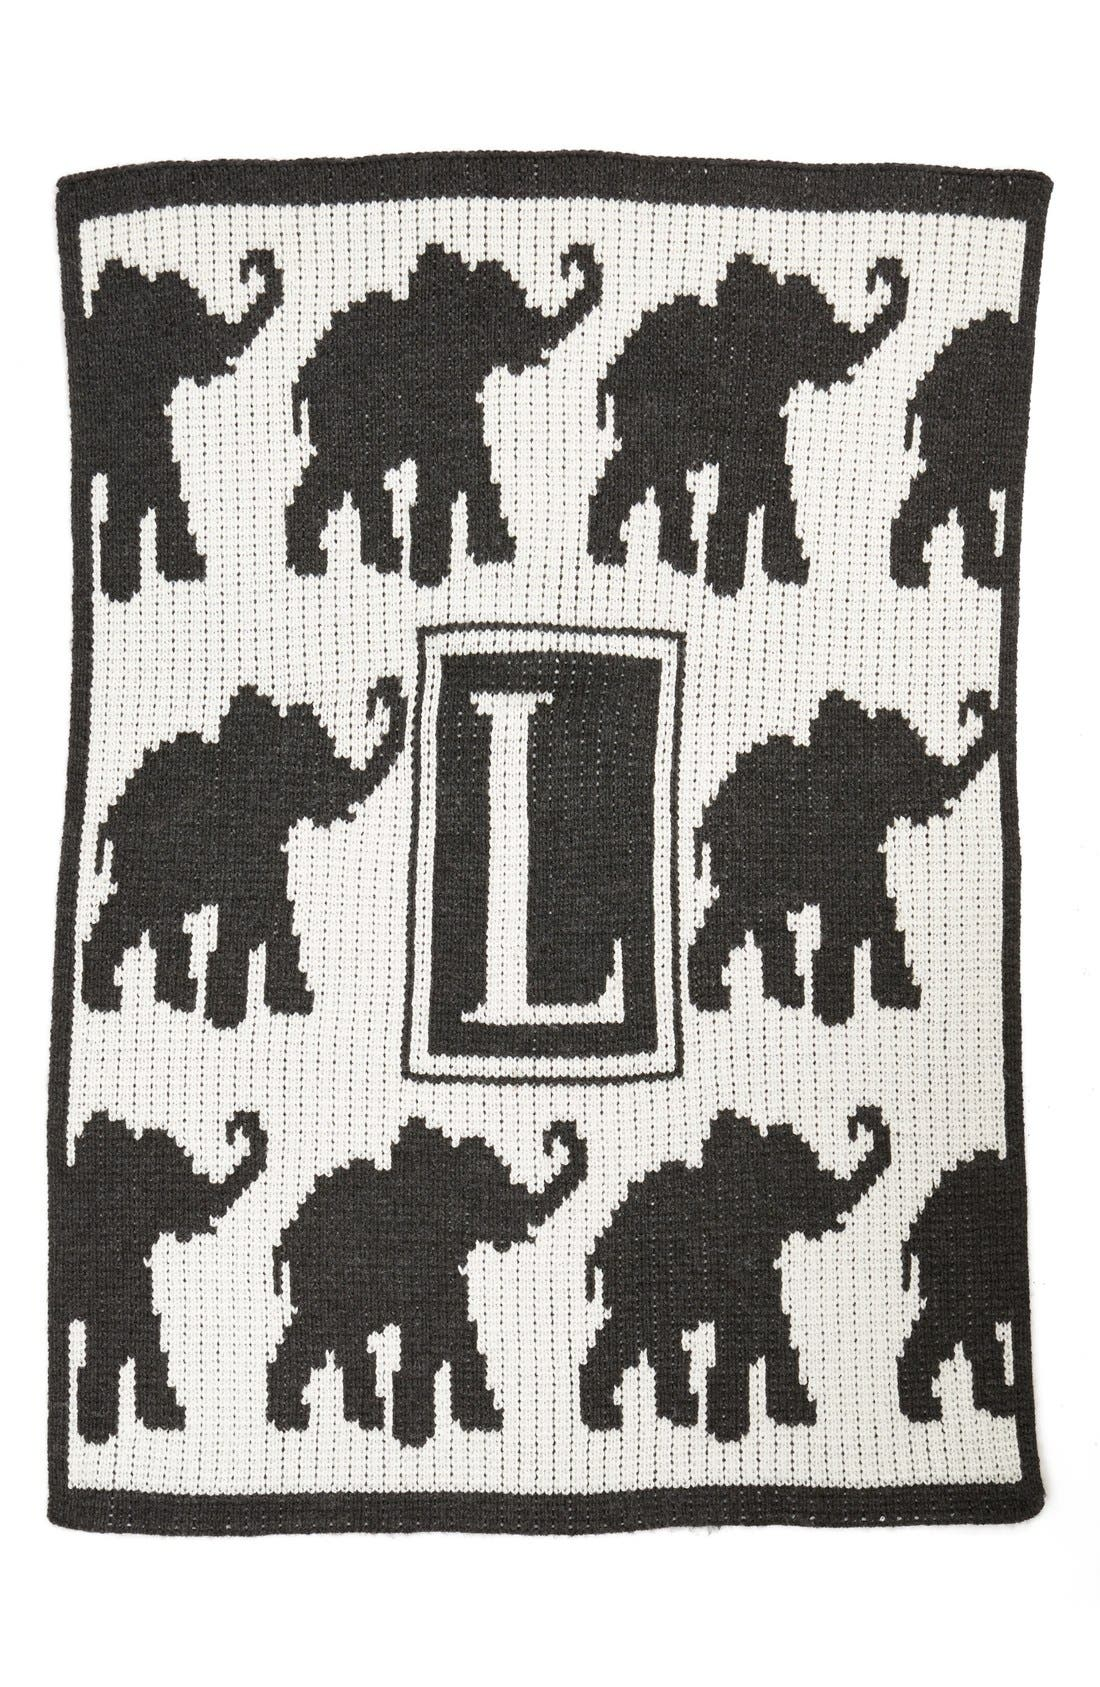 BUTTERSCOTCH BLANKEES 'Walking Elephants - Small' Personalized